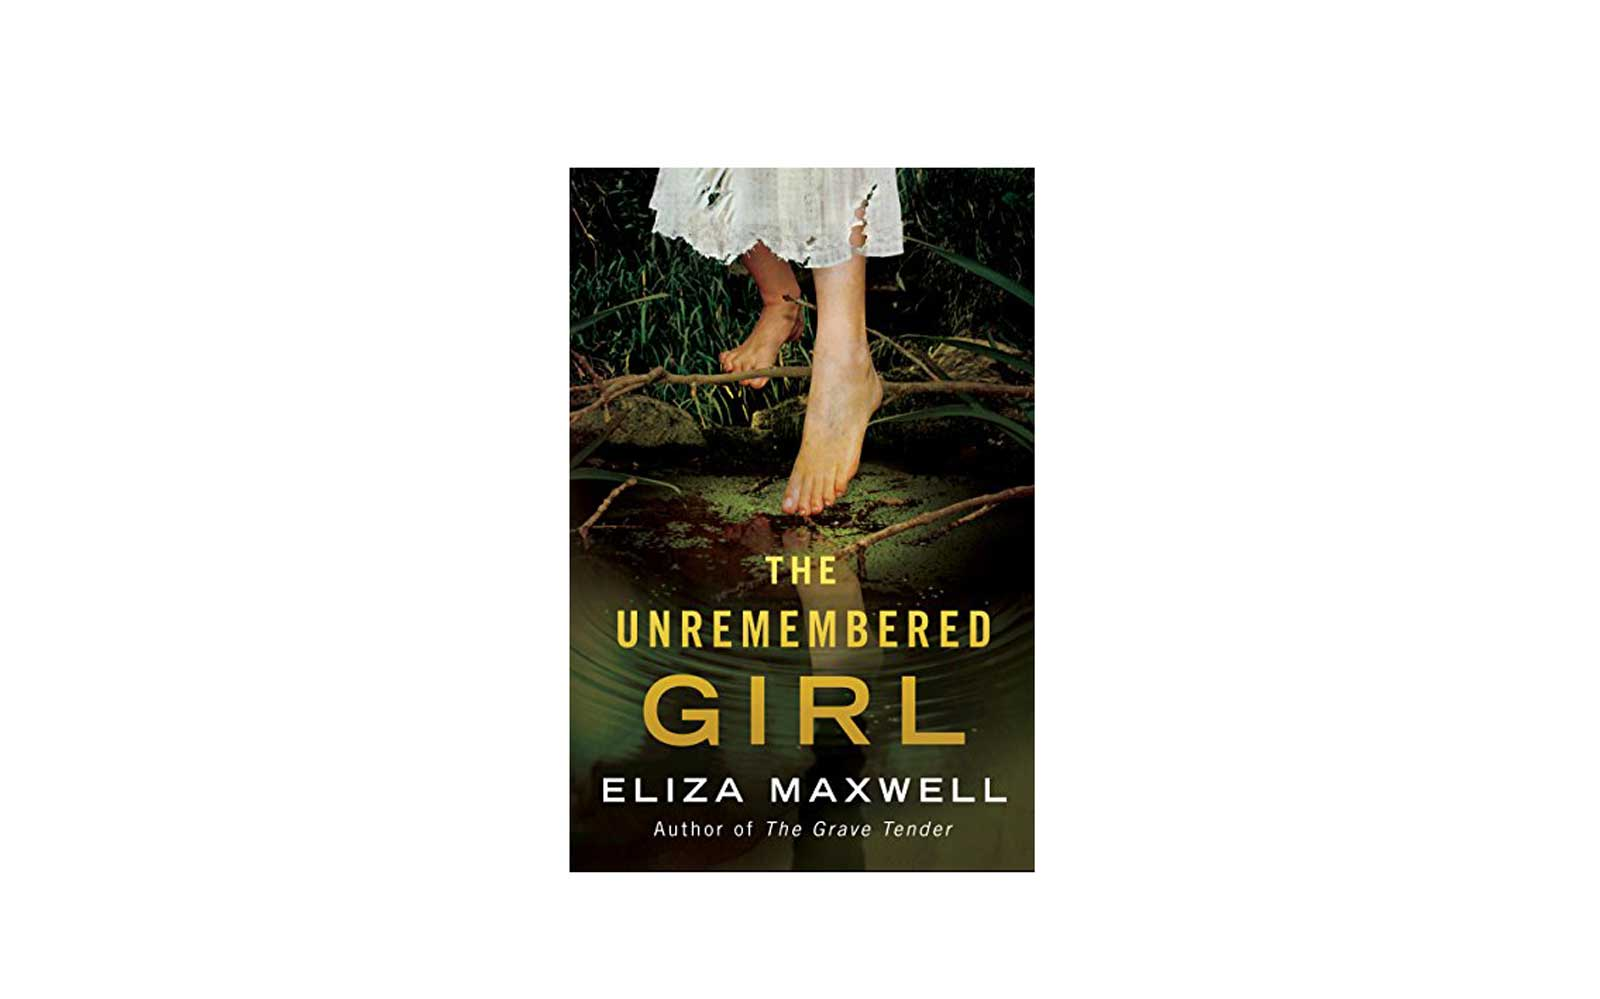 20 most popular Kindle books 2017 The Unremembered Girl